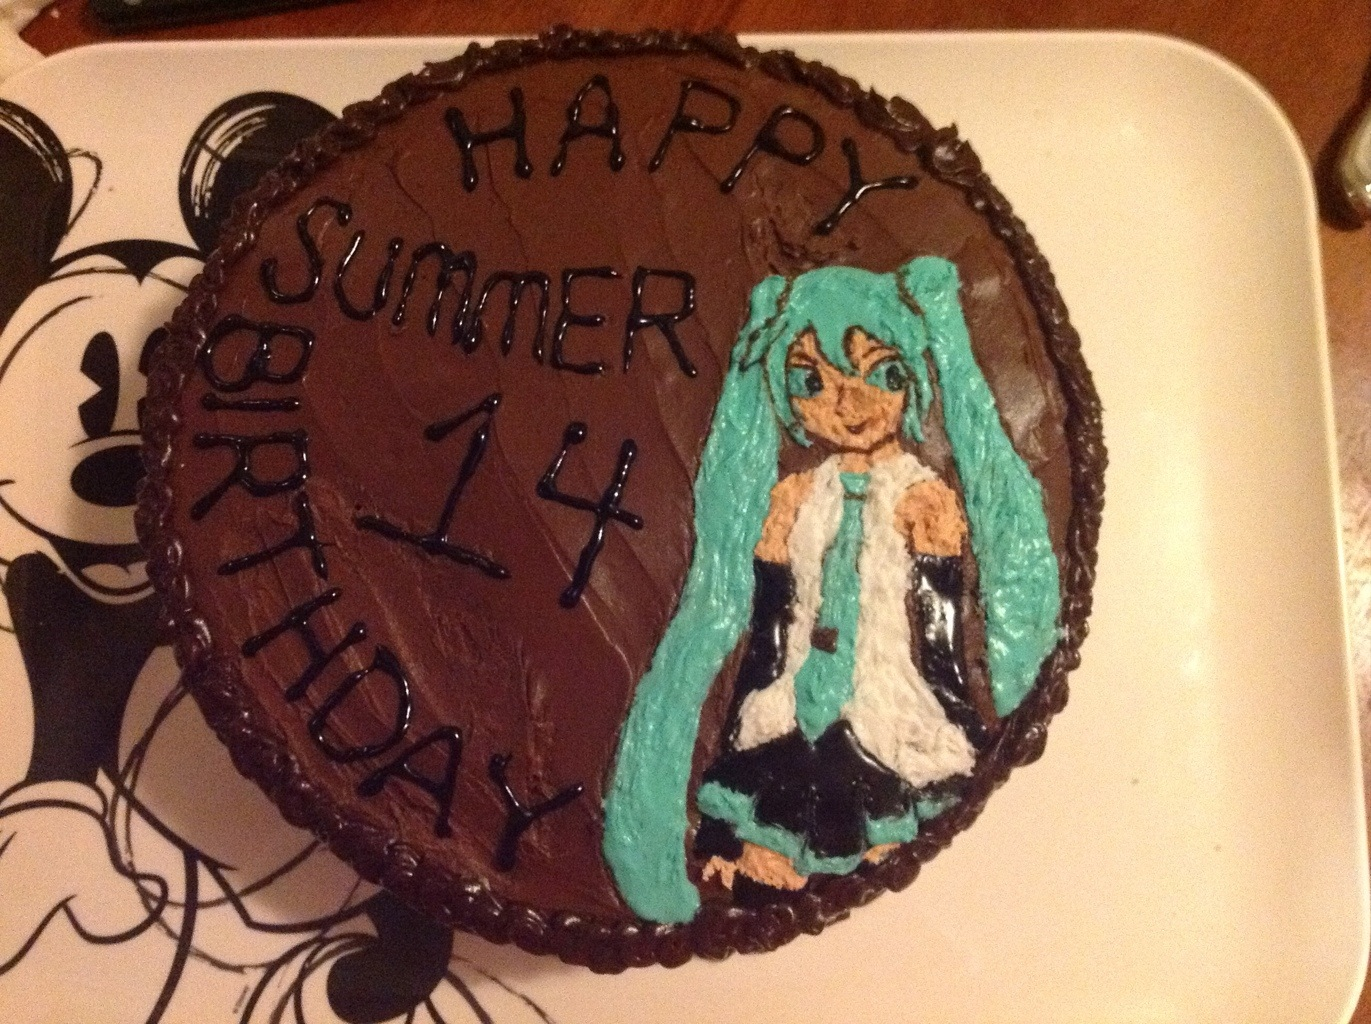 Showing Off Hatsune Miku Cake Android In The Kitchen